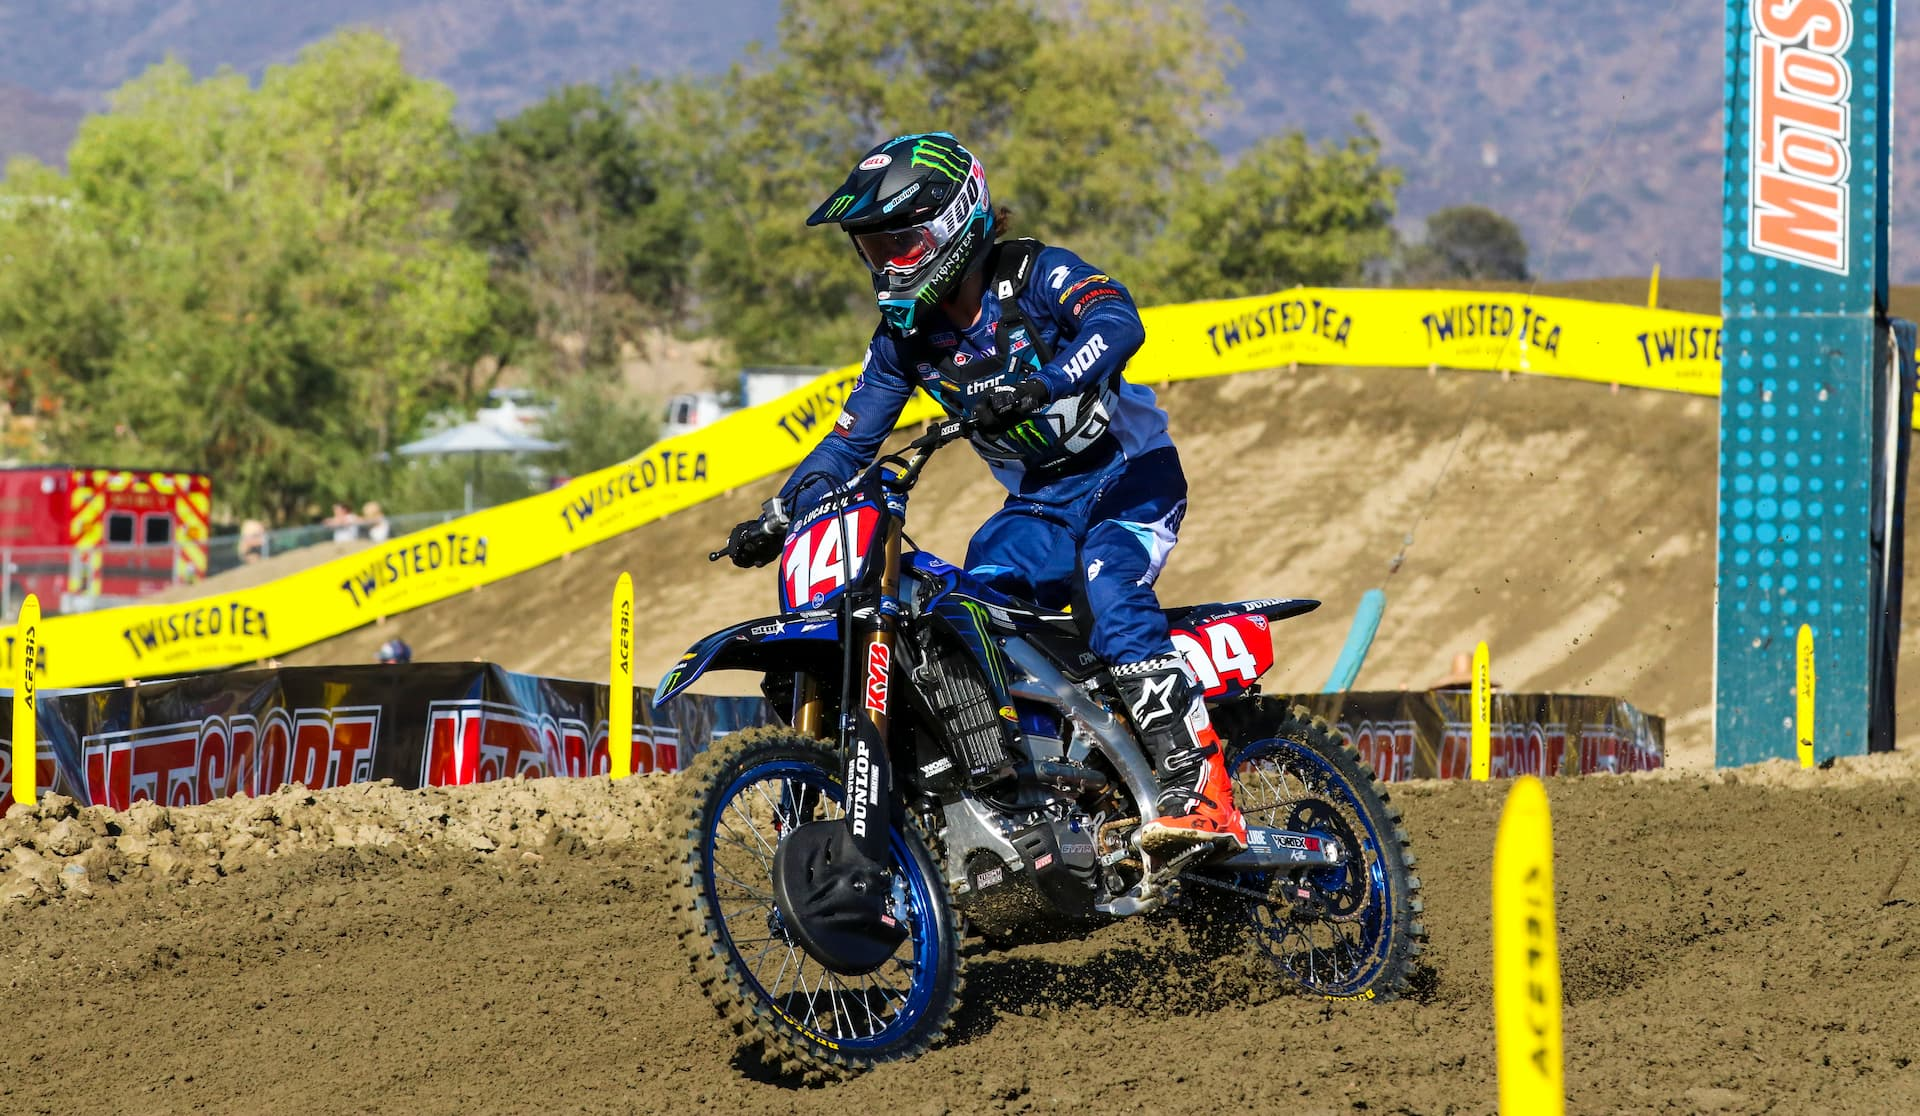 Dylan Ferrandis steals the fastest qualifying time on his last timed lap at Fox Raceway II in the 2021 Pro Motocross season. Photo by Rachel Schuoler / Kickin' the Tires